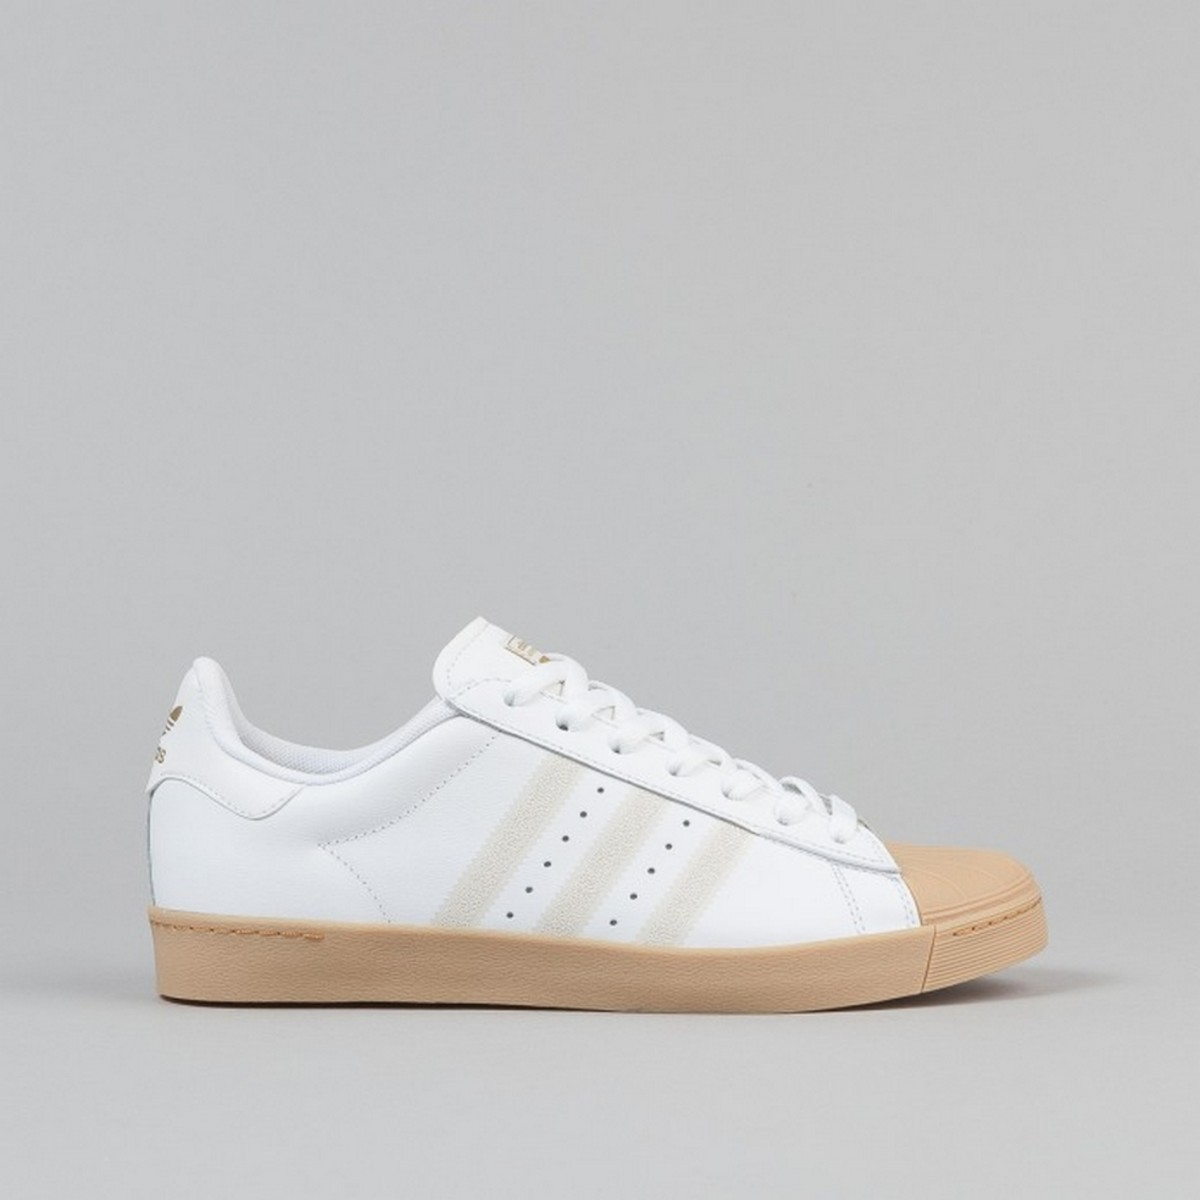 the-adidas-originals-superstar-vulc-arrives-in-white-leather-with-gum-soles-1